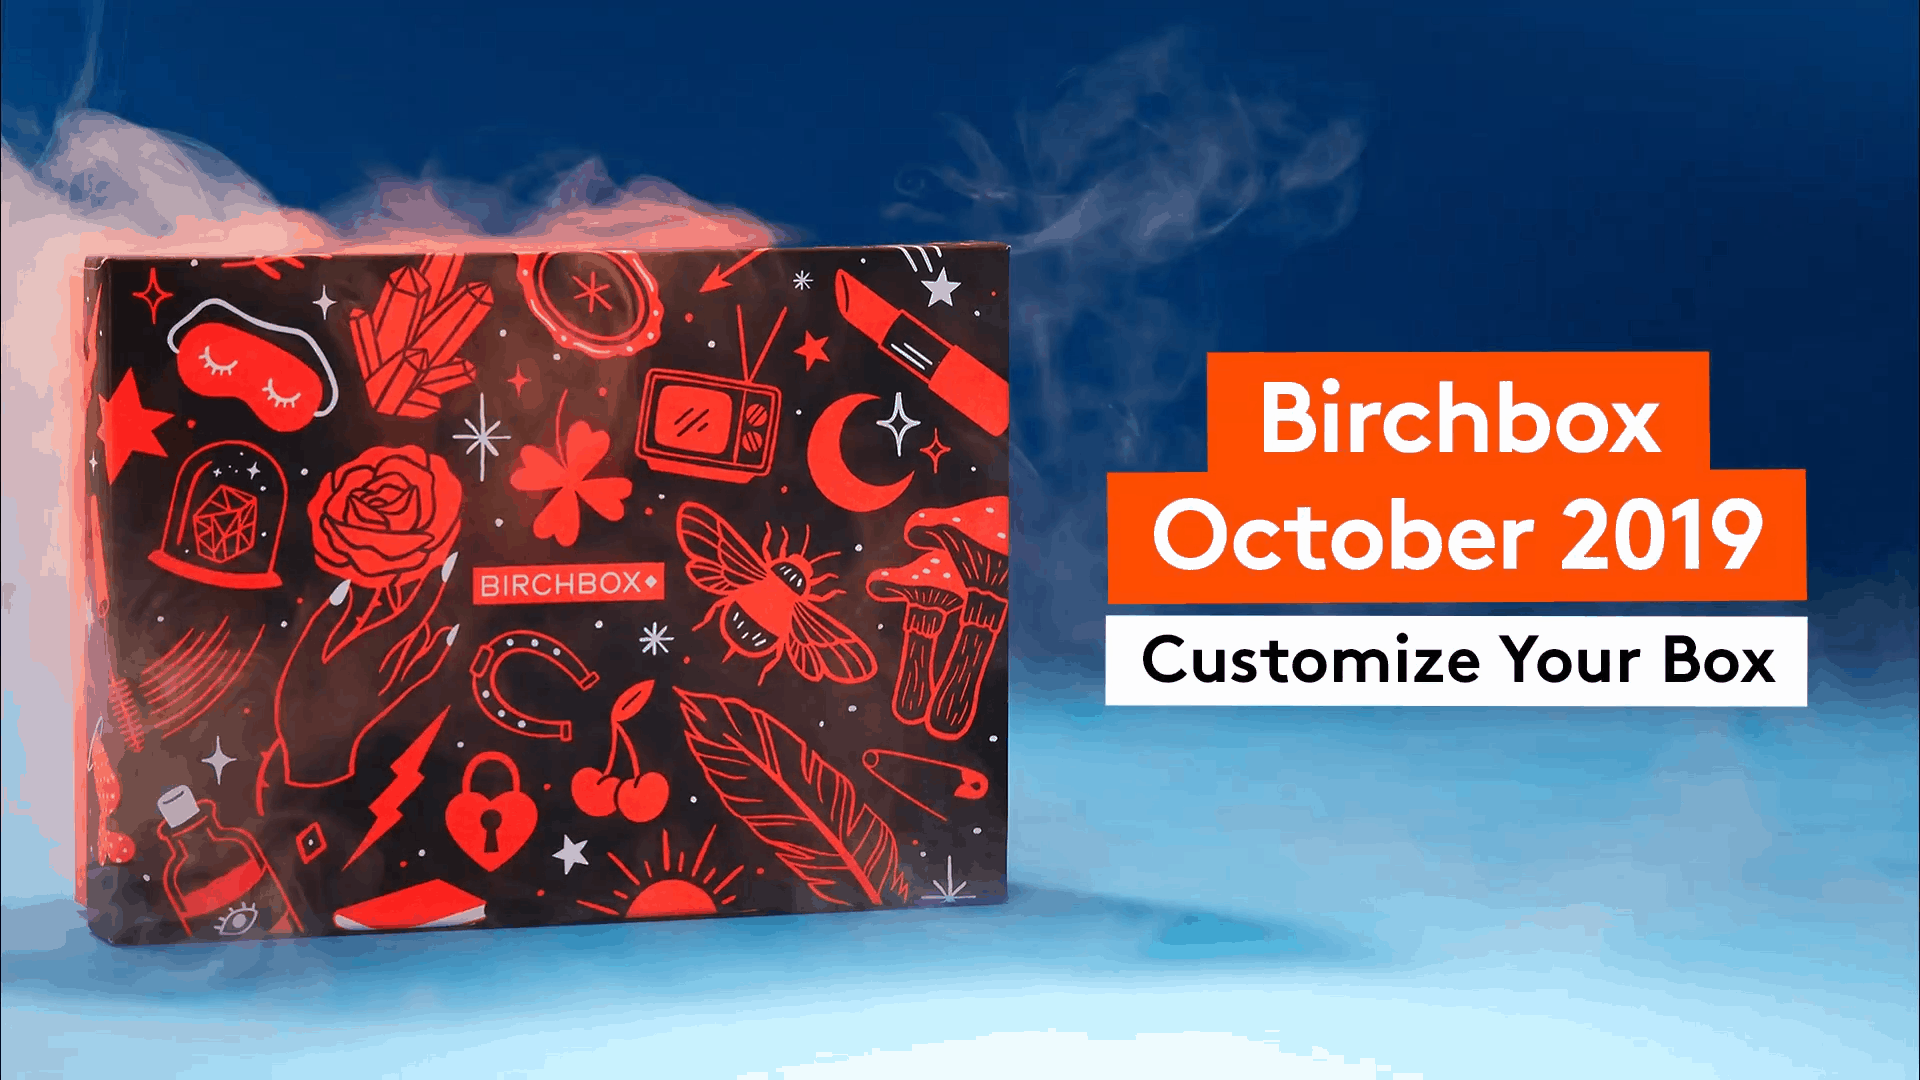 Birchbox October 2019 Selection Time!